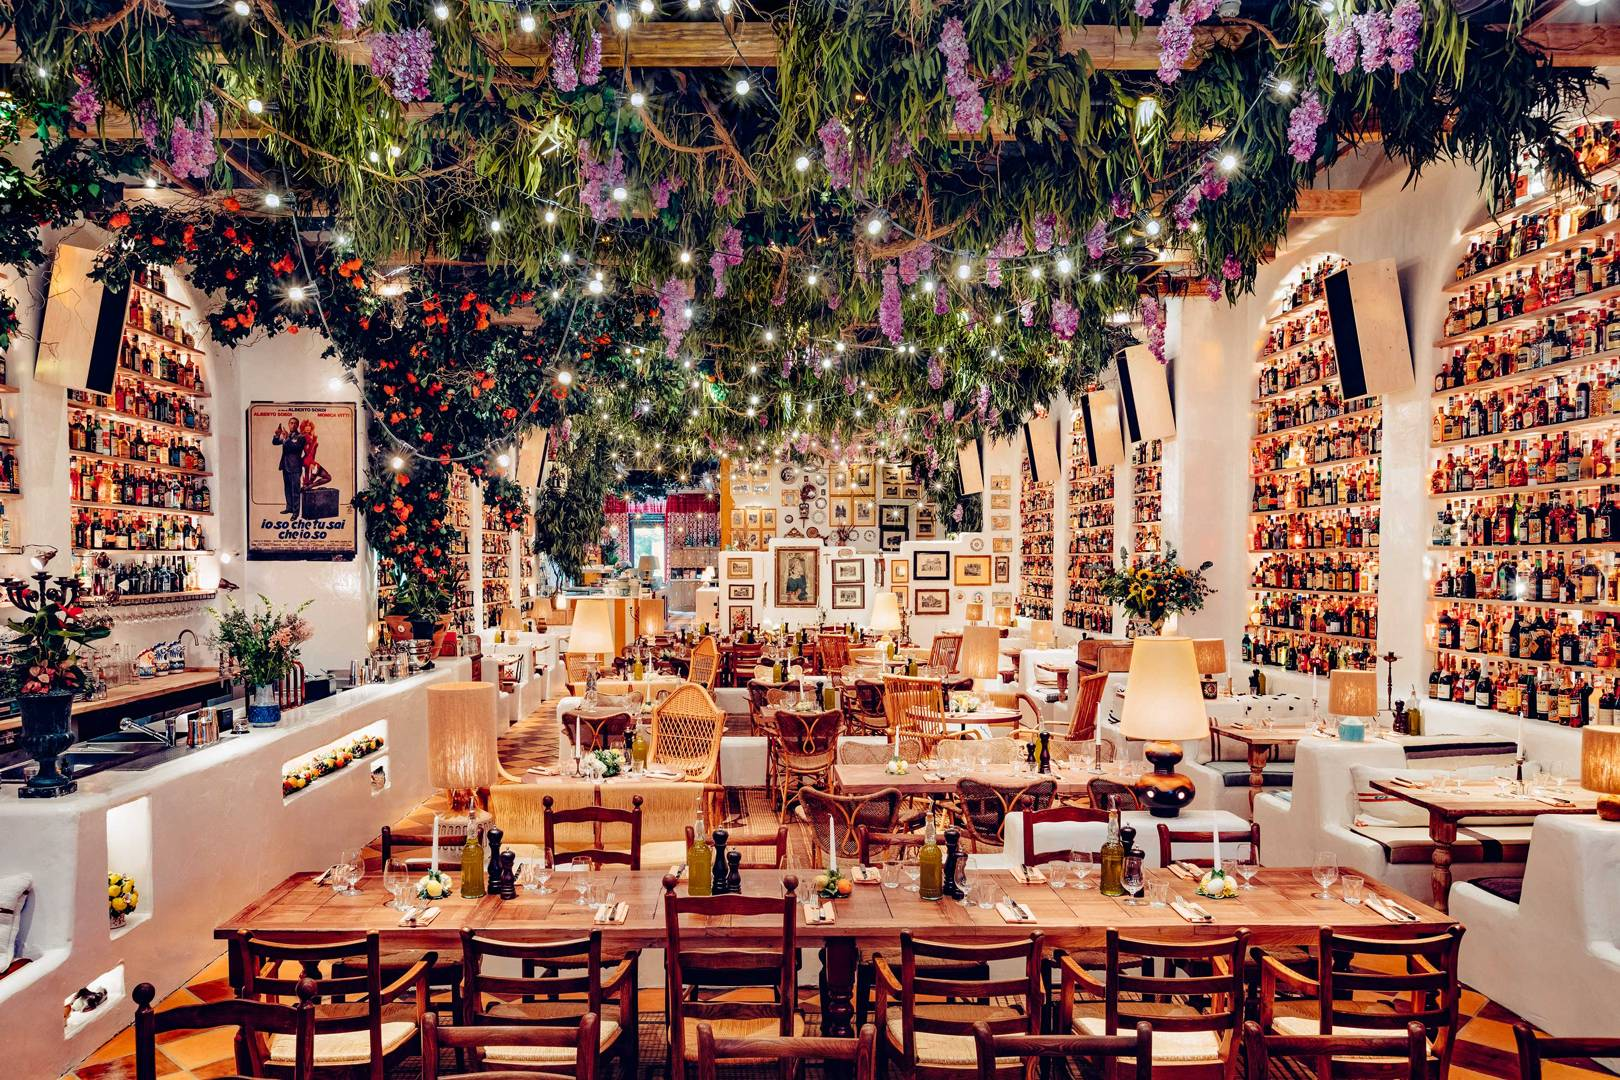 Ceiling covered in indoor plants at  Circolo Popolare restaurant.